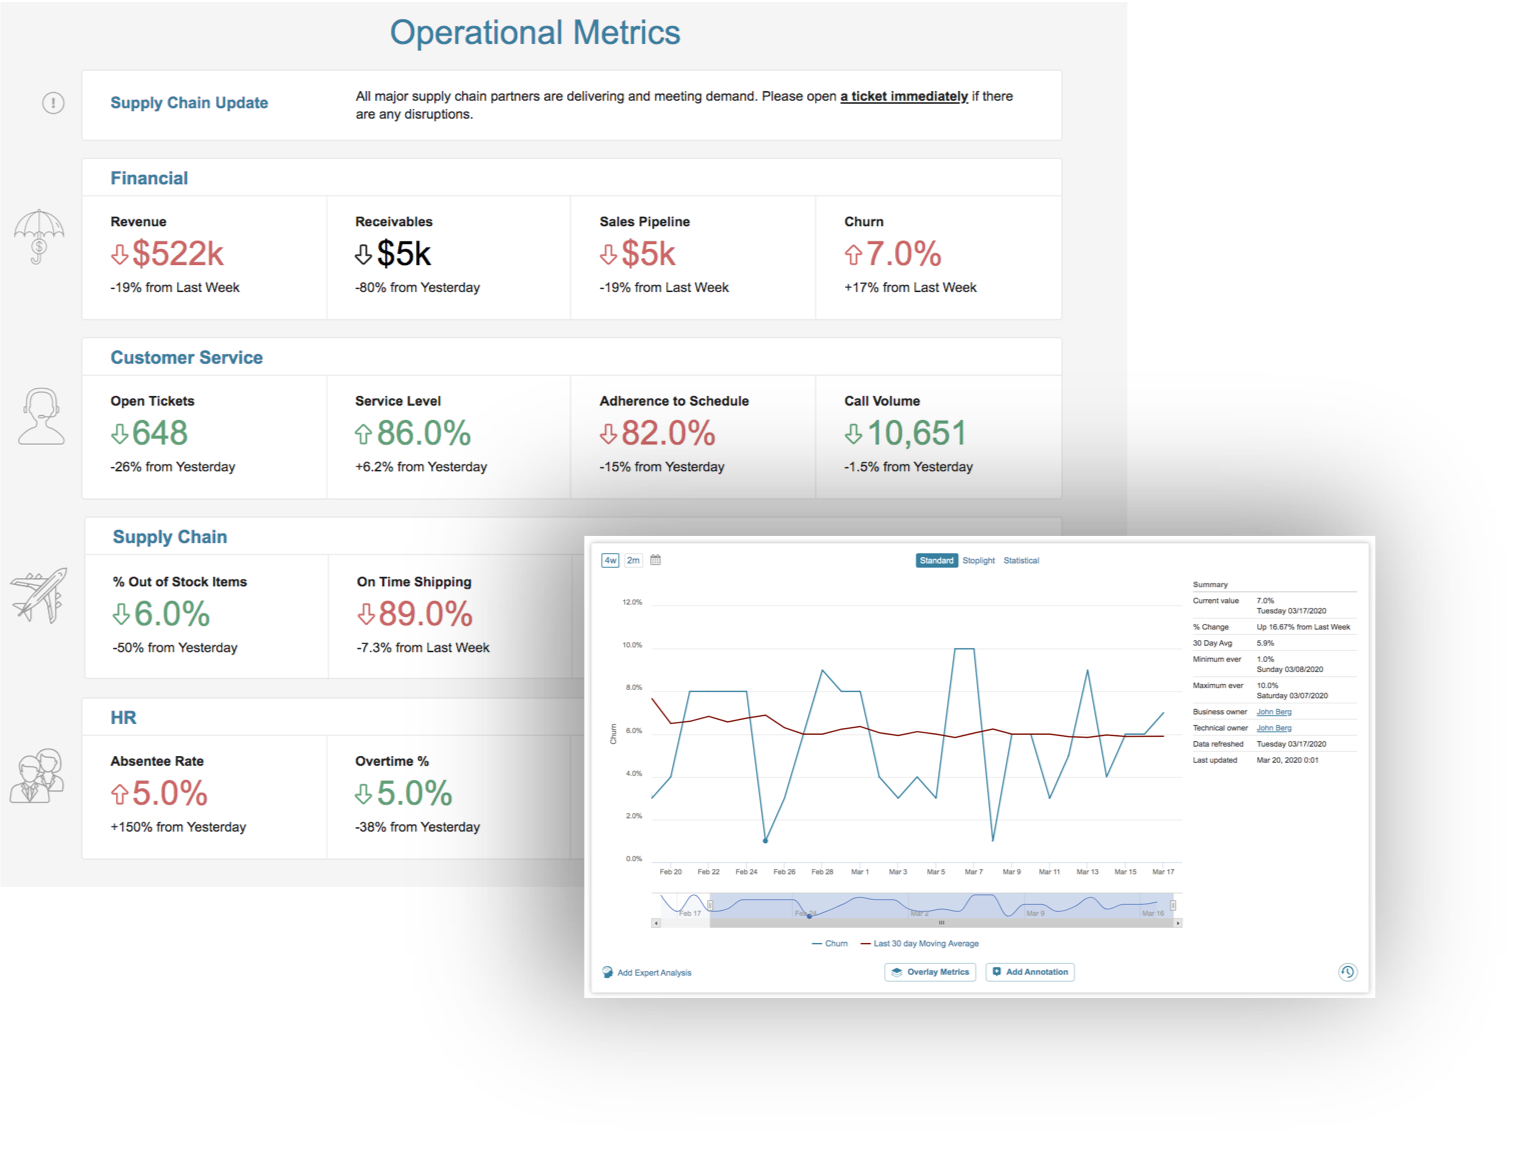 Portal Page showing Operational Metrics and a Metric overlaping